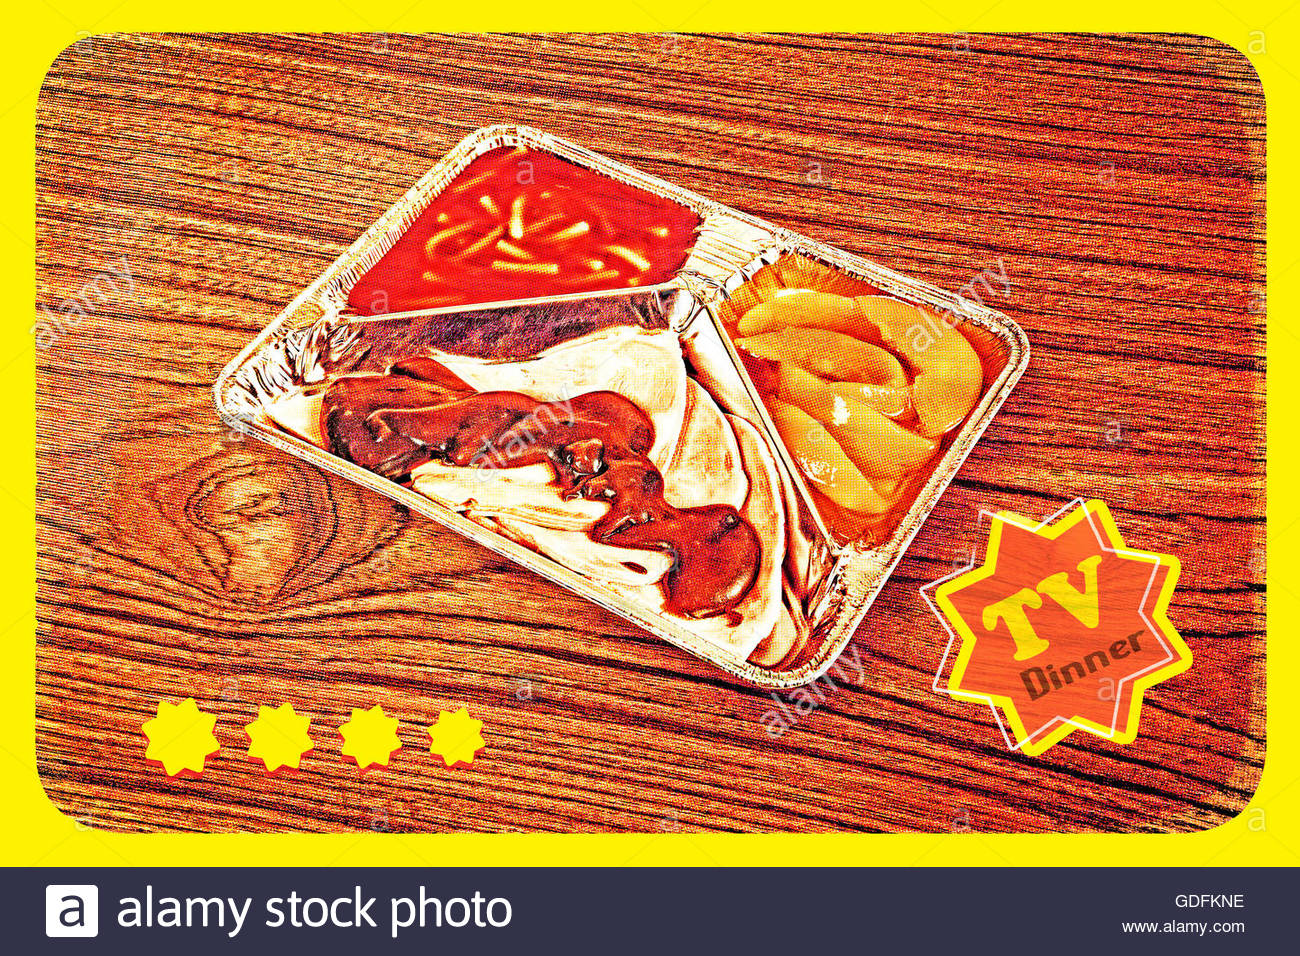 TV dinner tray vintage retro meal aluminium food dish on wooden table with dotscreen - Stock Image